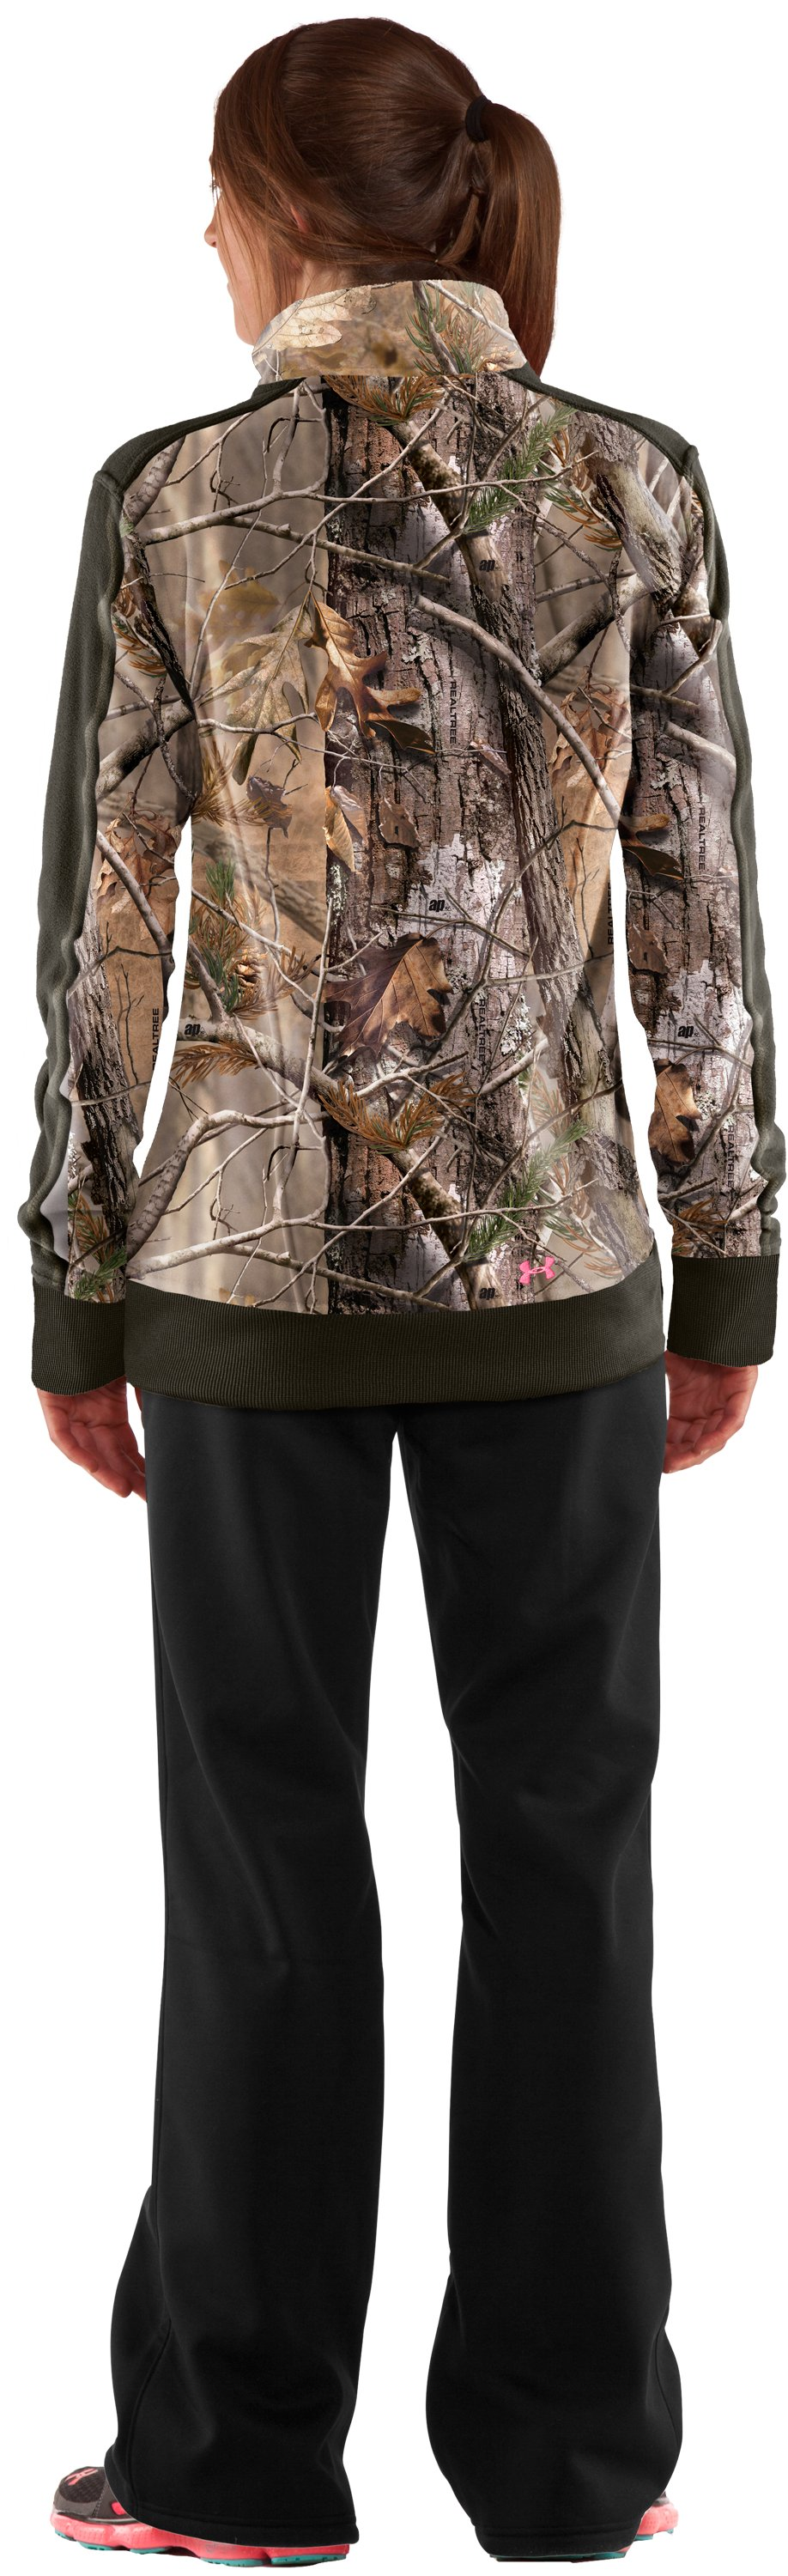 Women's Ayton Fleece Jacket, Realtree AP, Back